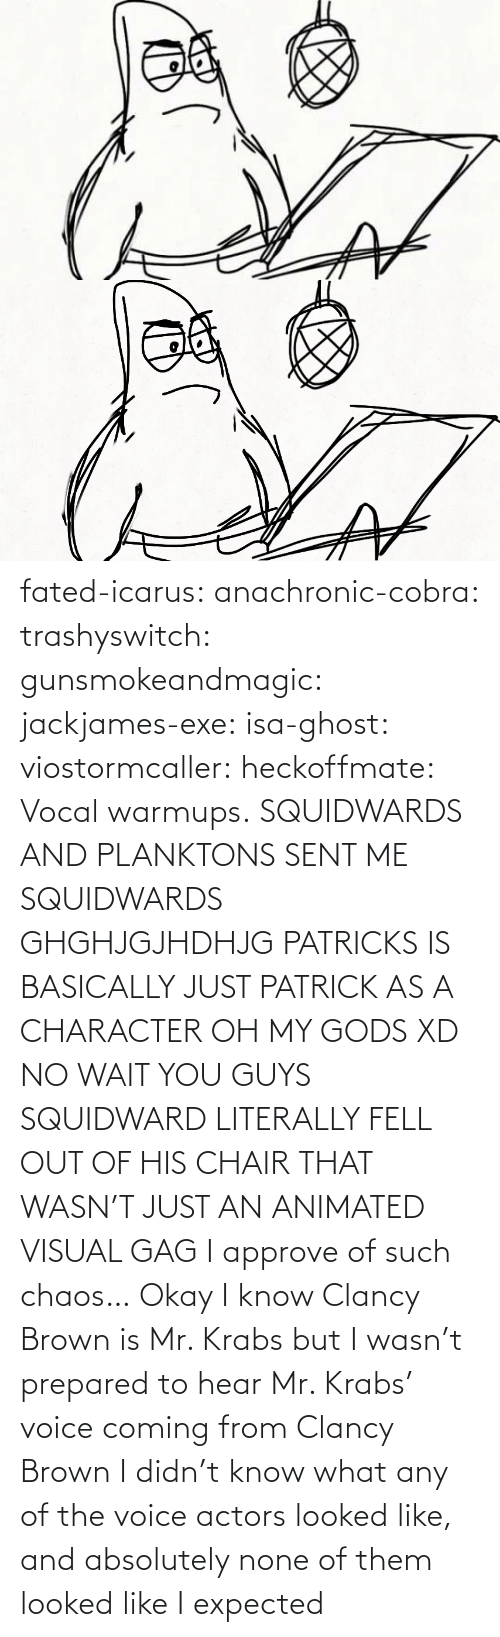 opaque: fated-icarus:  anachronic-cobra: trashyswitch:  gunsmokeandmagic:  jackjames-exe:  isa-ghost:   viostormcaller:  heckoffmate: Vocal warmups. SQUIDWARDS AND PLANKTONS SENT ME  SQUIDWARDS GHGHJGJHDHJG   PATRICKS IS BASICALLY JUST PATRICK AS A CHARACTER OH MY GODS XD   NO WAIT YOU GUYS SQUIDWARD LITERALLY FELL OUT OF HIS CHAIR THAT WASN'T JUST AN ANIMATED VISUAL GAG    I approve of such chaos…    Okay I know Clancy Brown is Mr. Krabs but I wasn't prepared to hear Mr. Krabs' voice coming from Clancy Brown    I didn't know what any of the voice actors looked like, and absolutely none of them looked like I expected